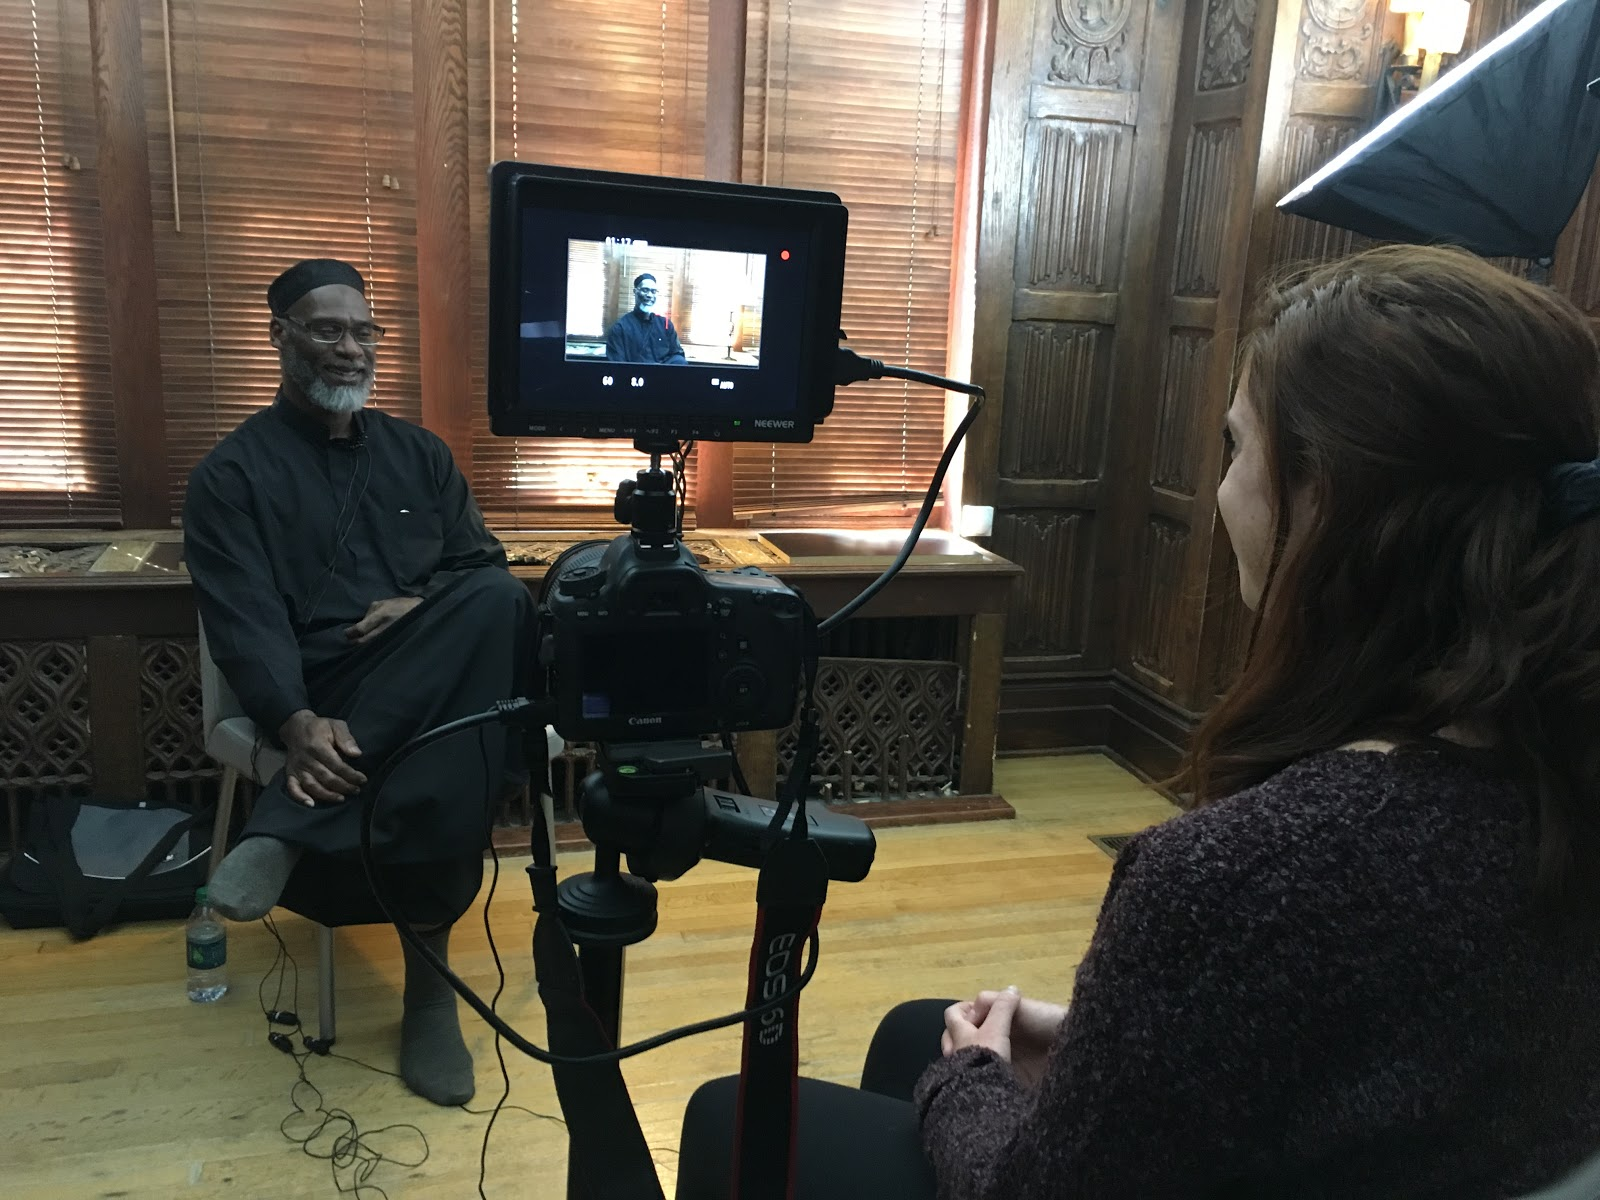 Abdul Lateef being interviewed by Maureen Devlin